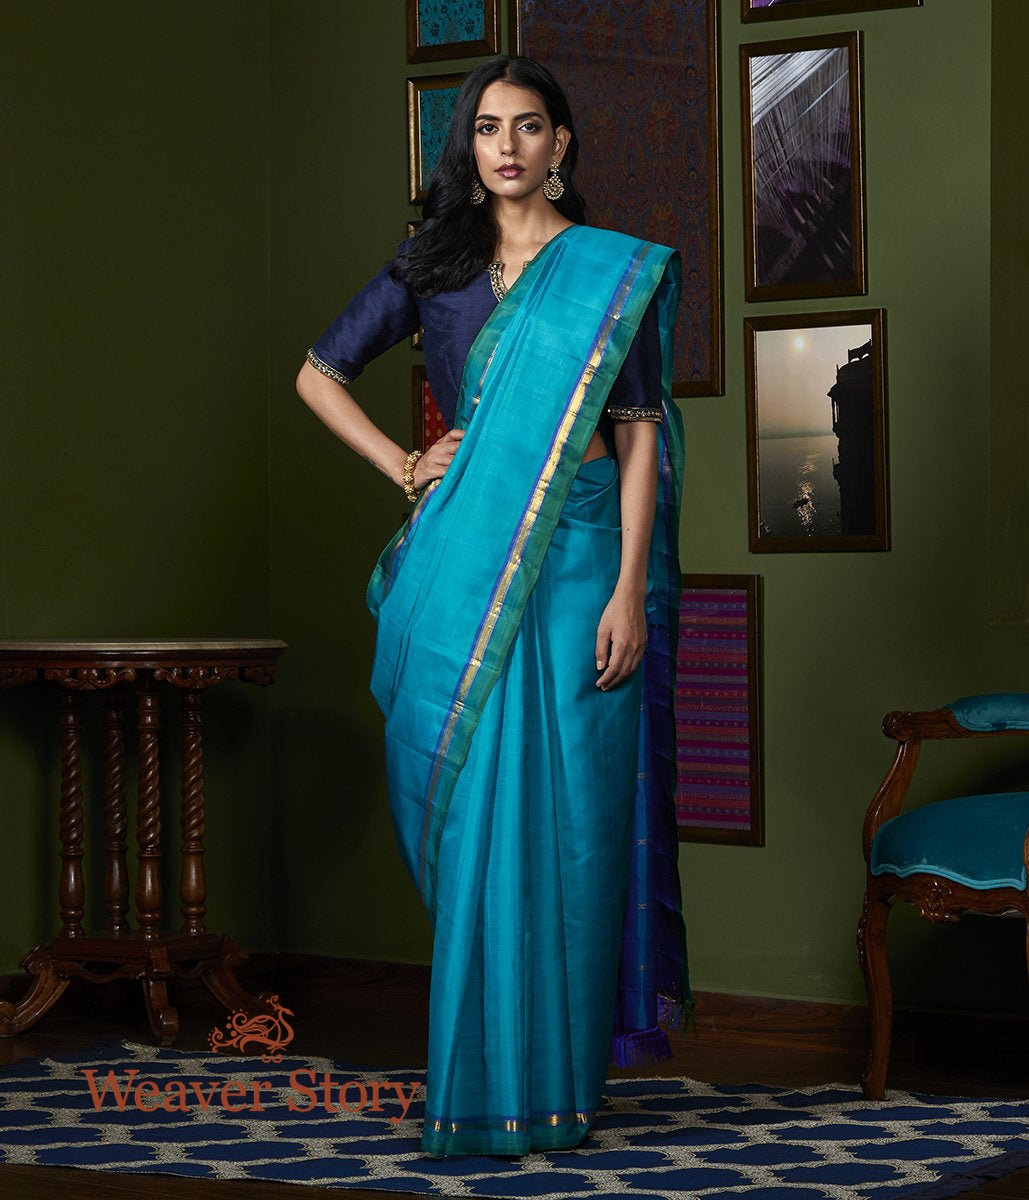 Handwoven Frozi Blue Kanjivaram Silk Saree with Green Border